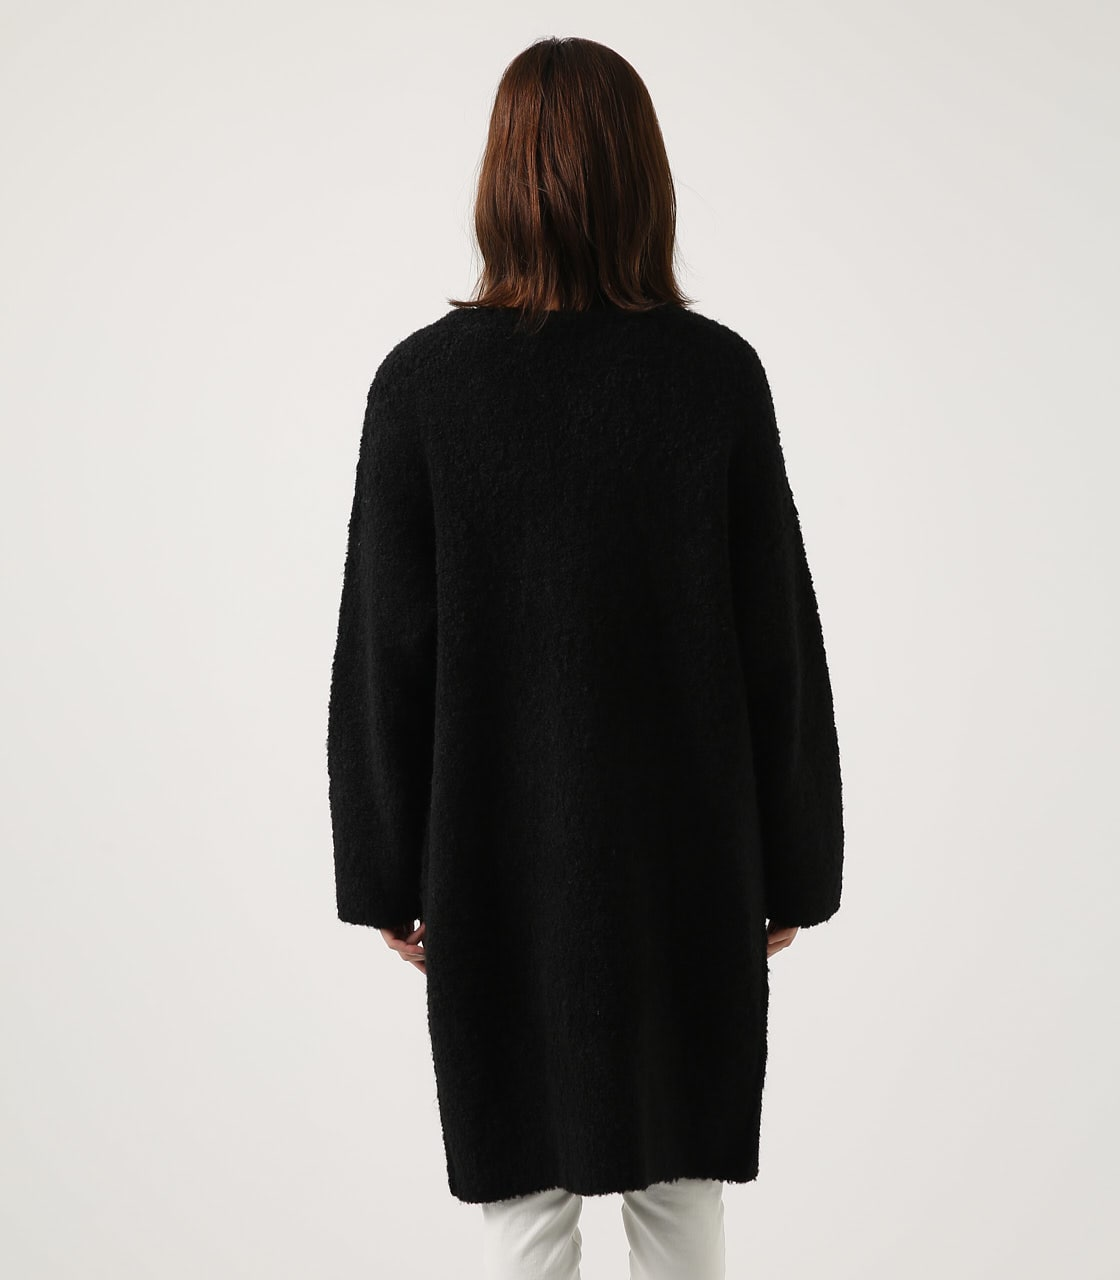 【AZUL BY MOUSSY】ブークレロングカーデ 詳細画像 BLK 7